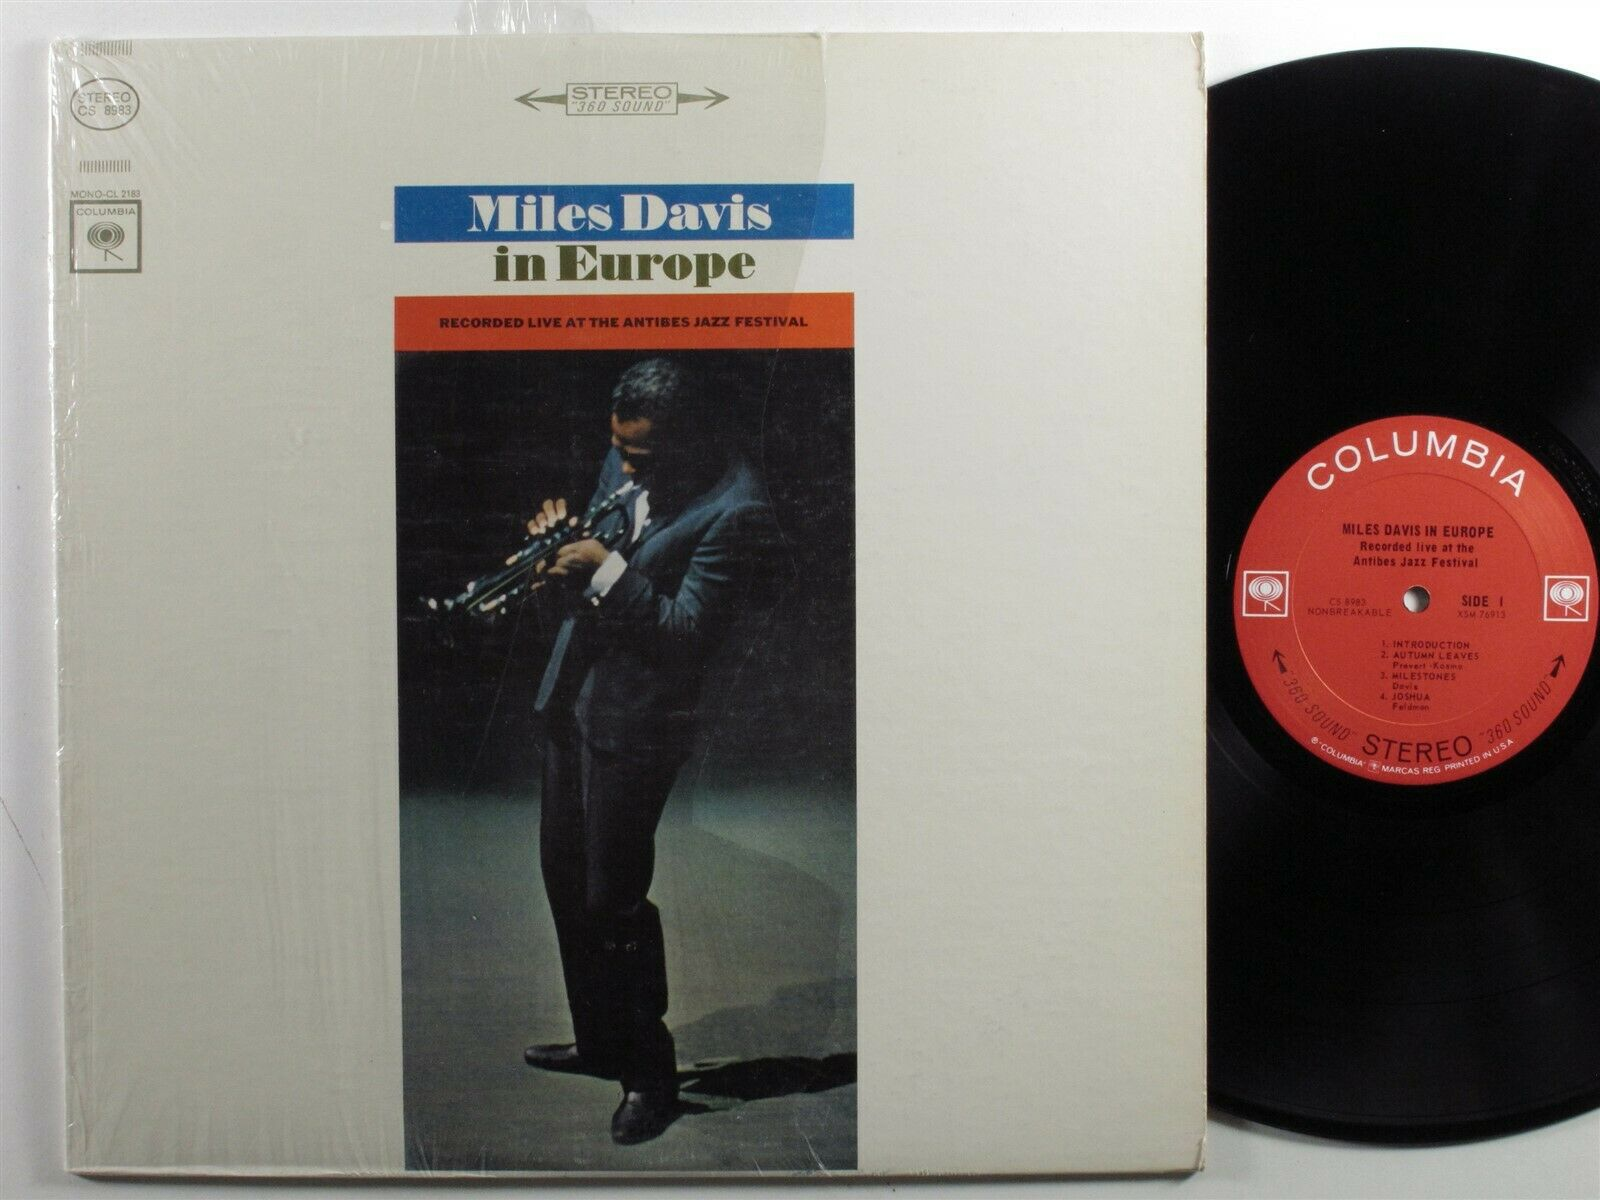 MILES DAVIS In Europe COLUMBIA LP VG+/VG++ 2-eye stereo SHRINK